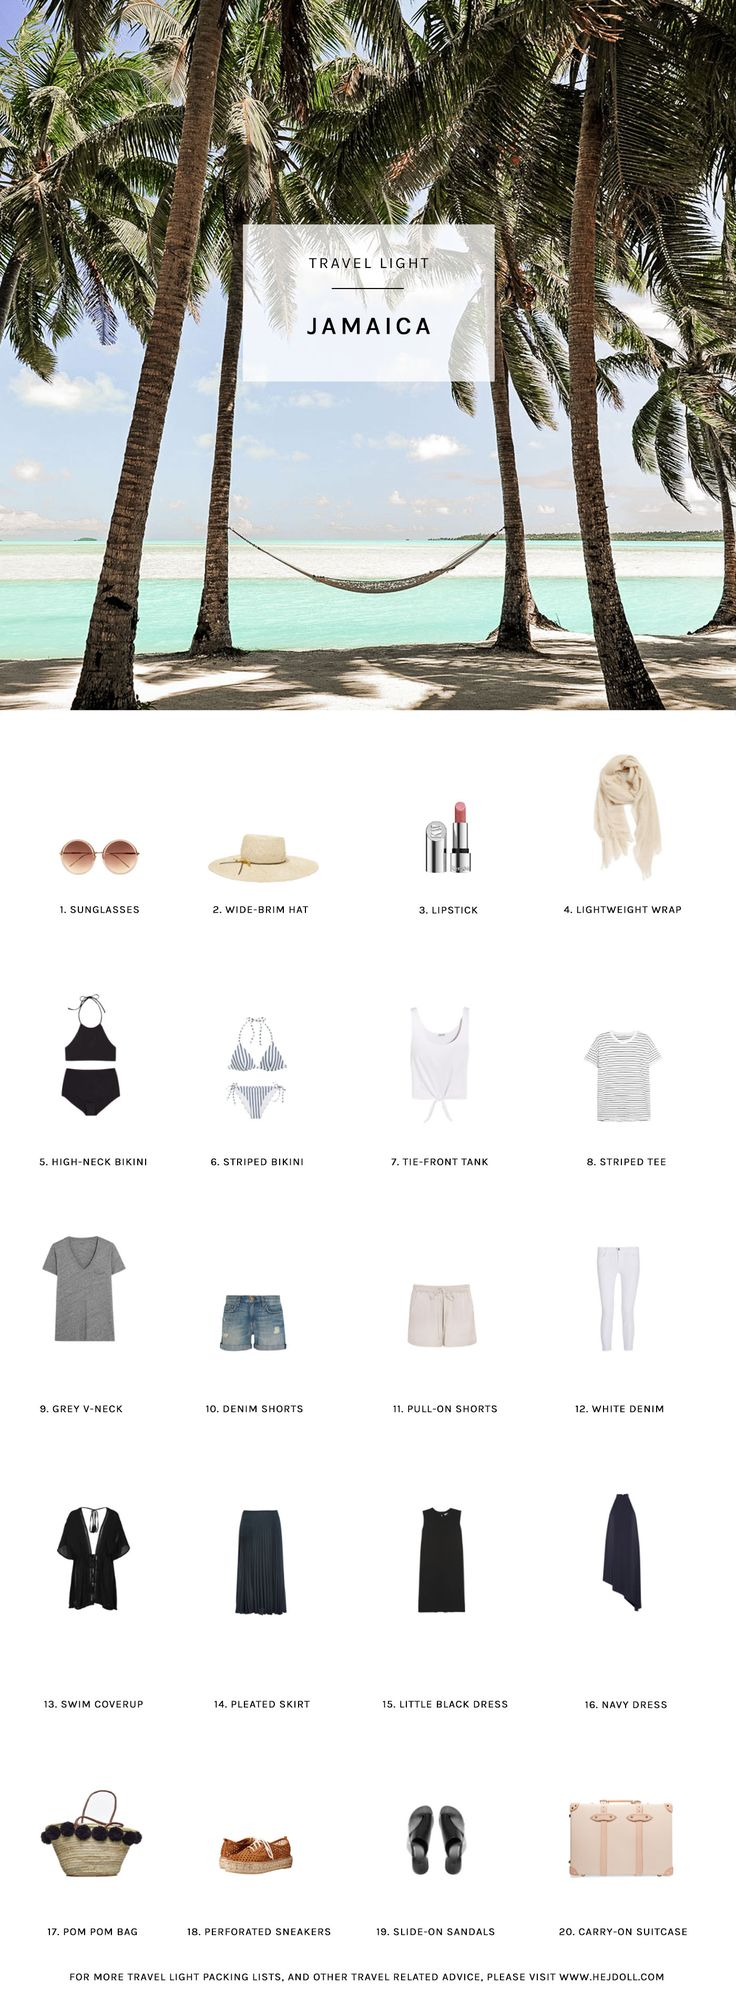 Travel Light - Pack for Jamaica in the Fall. 20 items, 10 outfits, 1 carry-on, this is the perfect fall packing list for a trip to the caribbean!